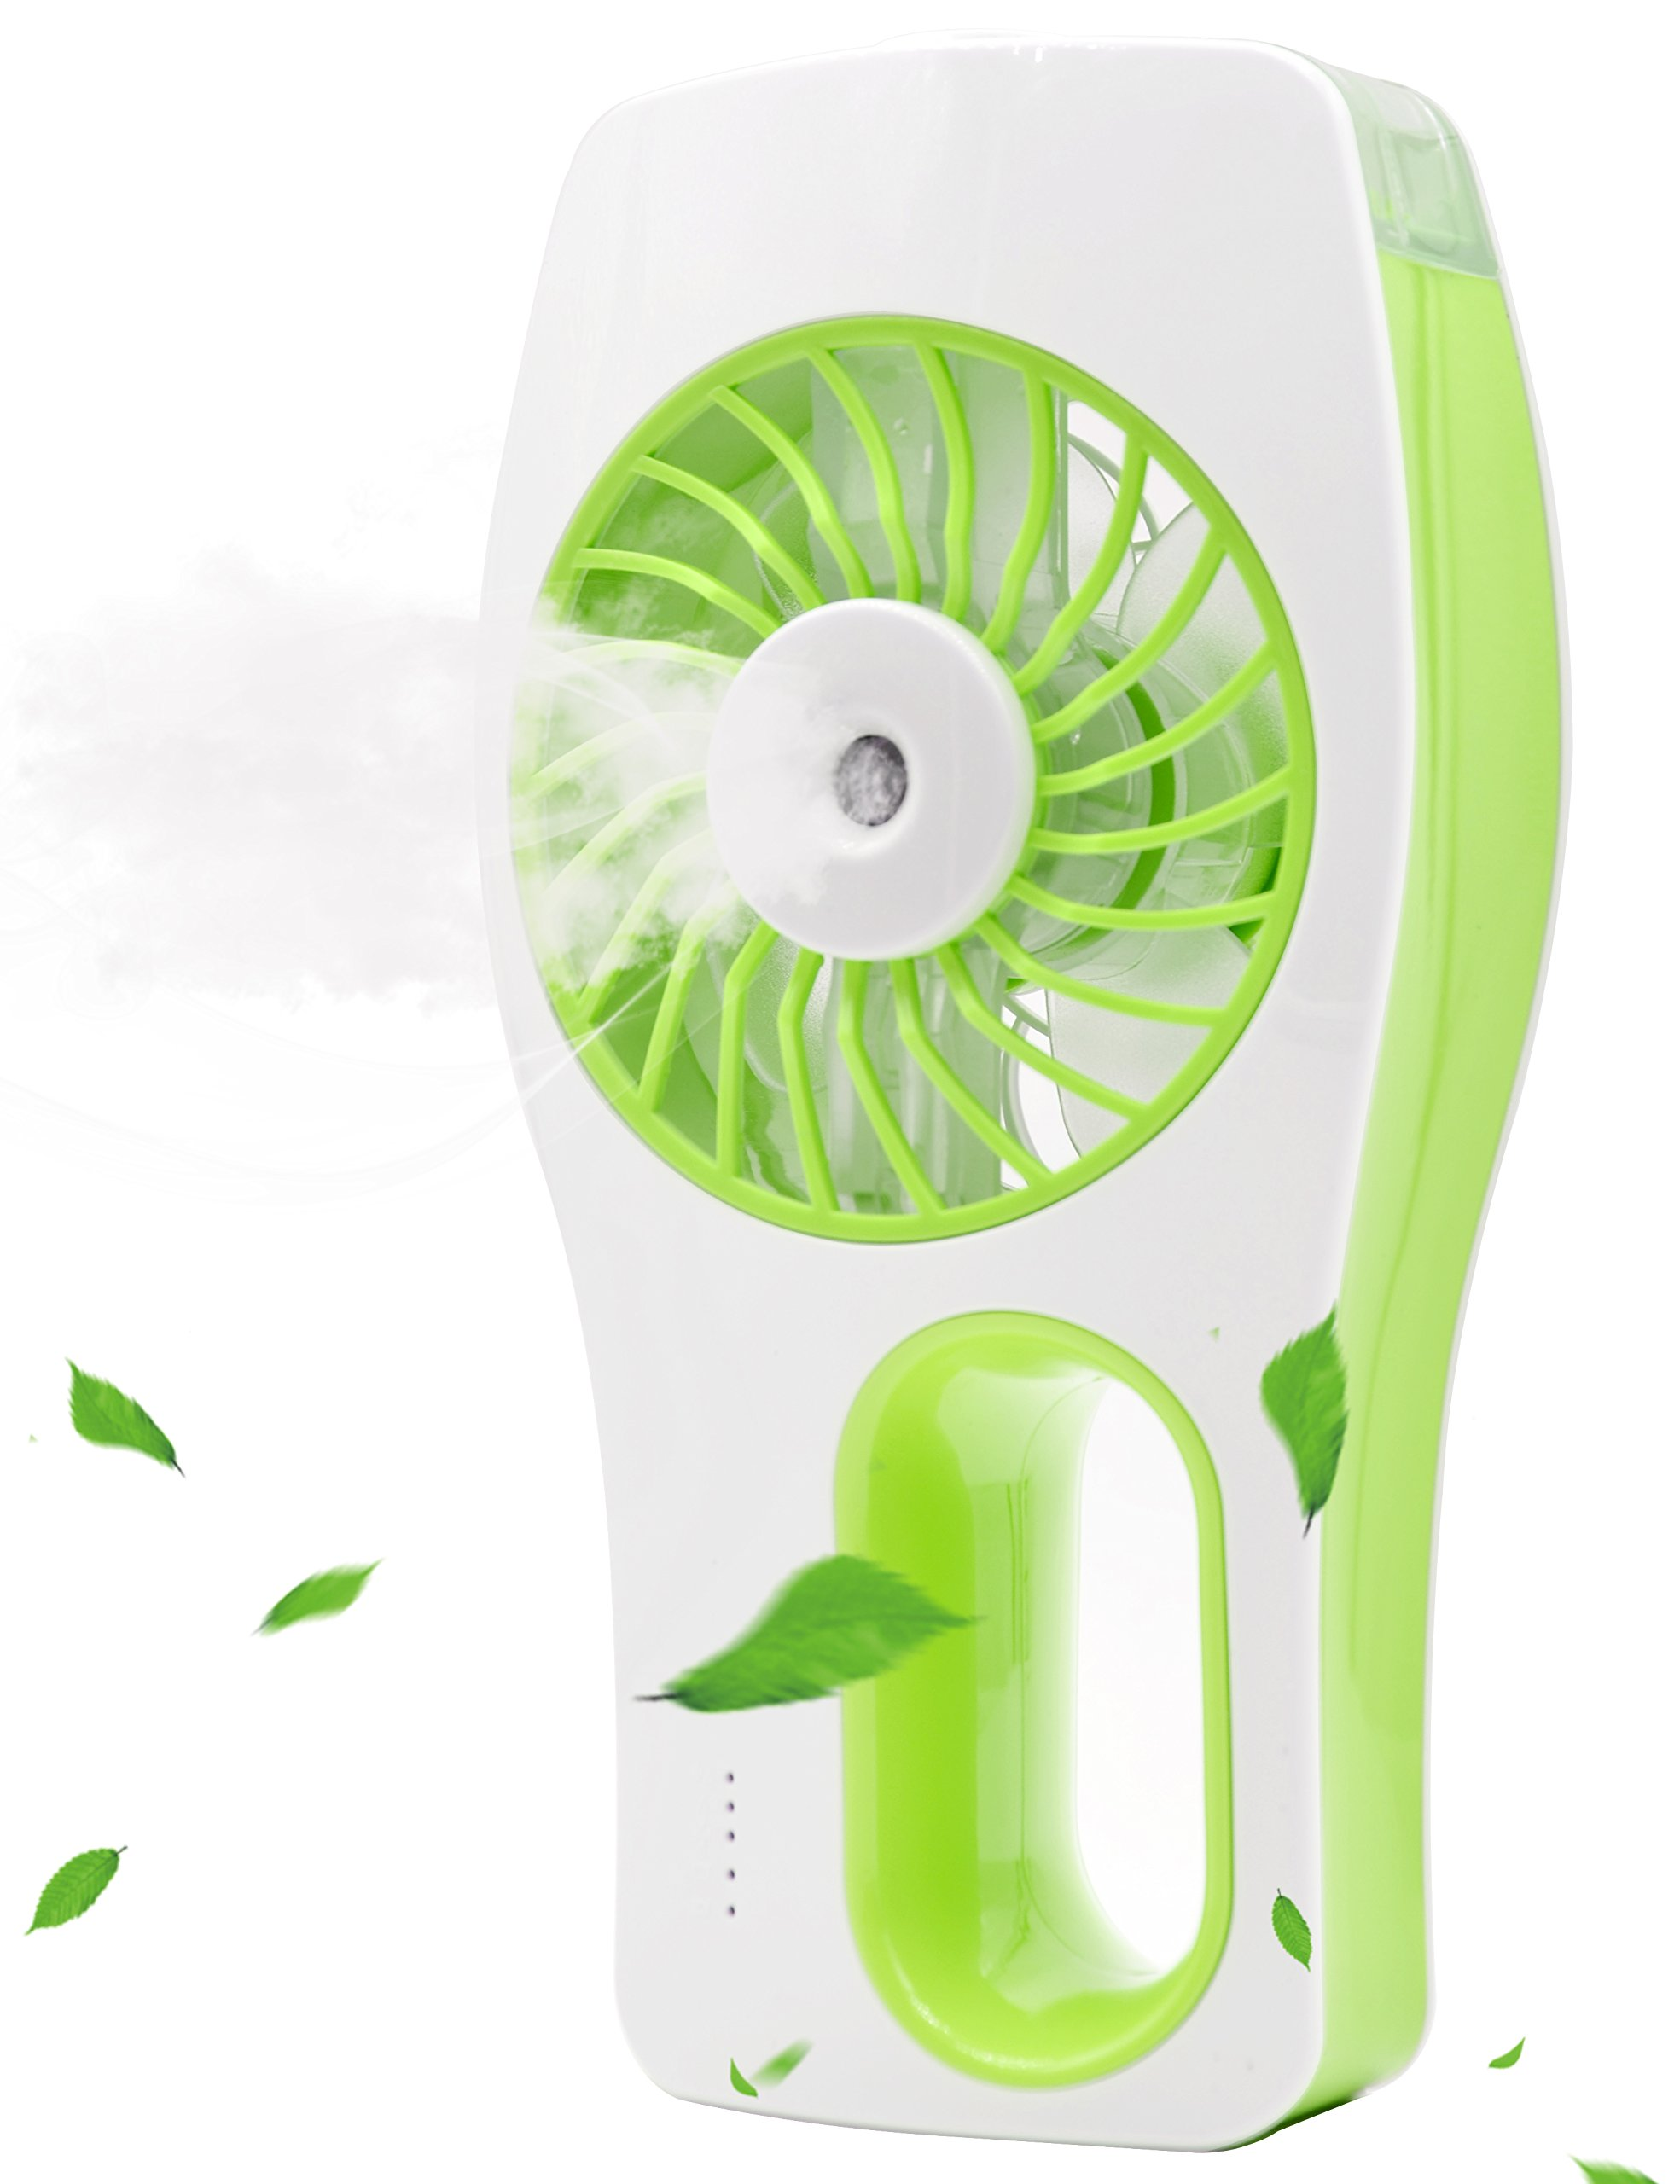 Minhe Handheld USB Misting Fan Humidifier,USB Rechargeable Portable Fan,Summer Spray Fan for Face Water Supply, Beauty. Use in Home, School, Office Room, Travelling, Car (Green)